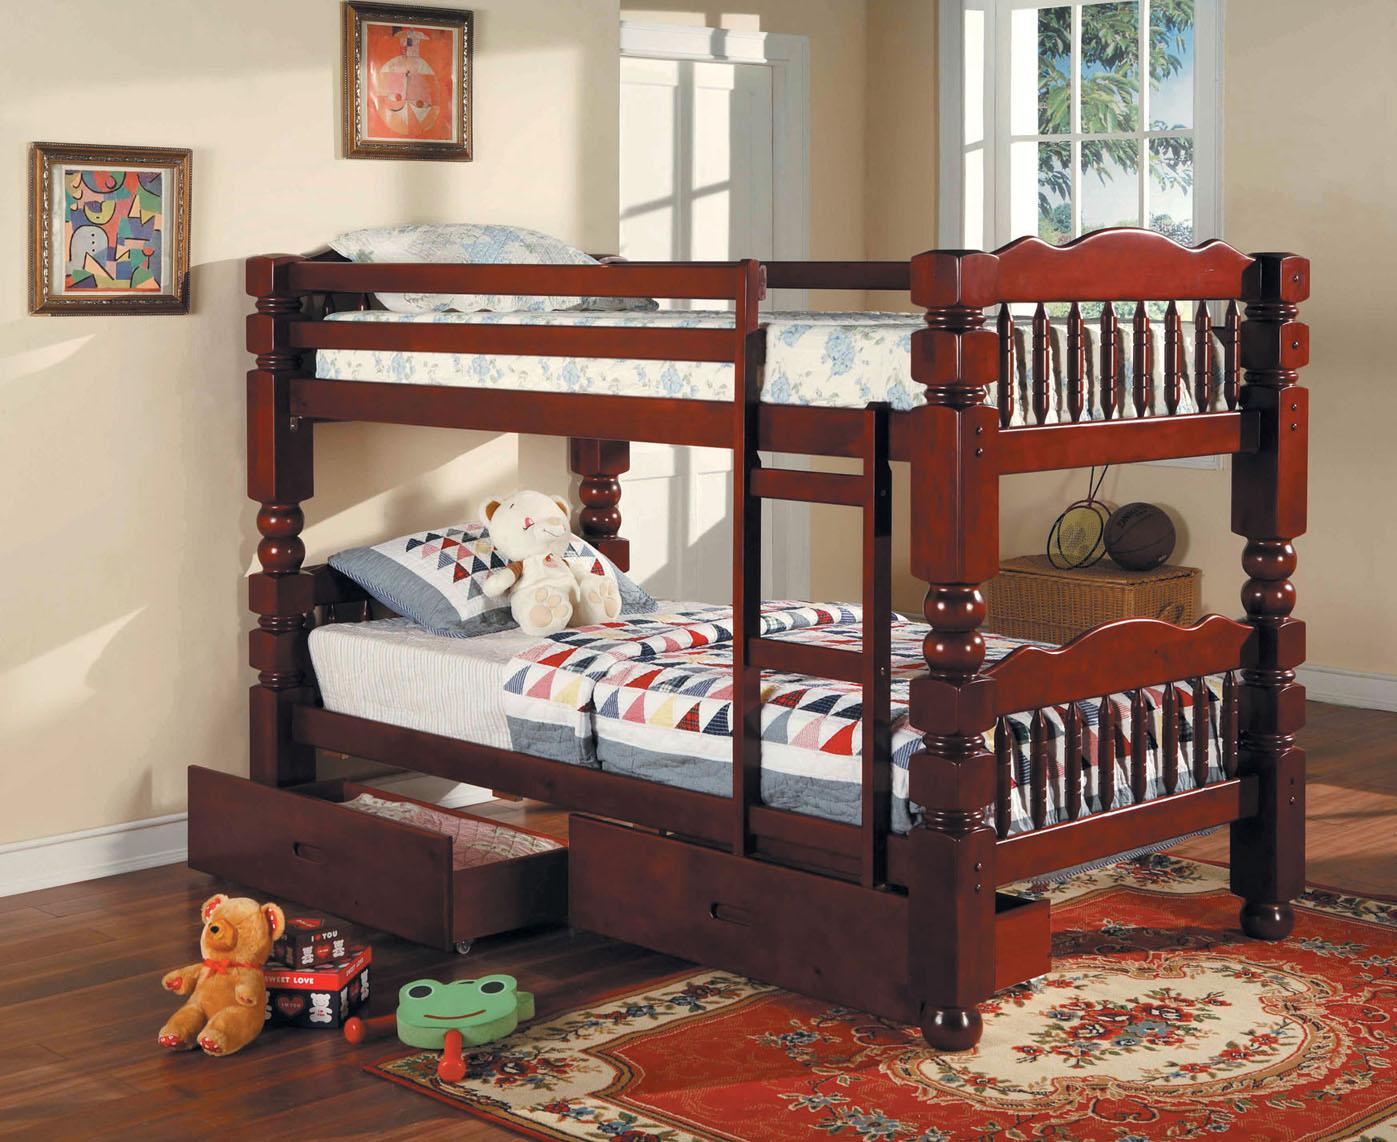 Acme Furniture Benji Twin Bunkbed w/ Storage Drawers - Item Number: 02570 STORAGE